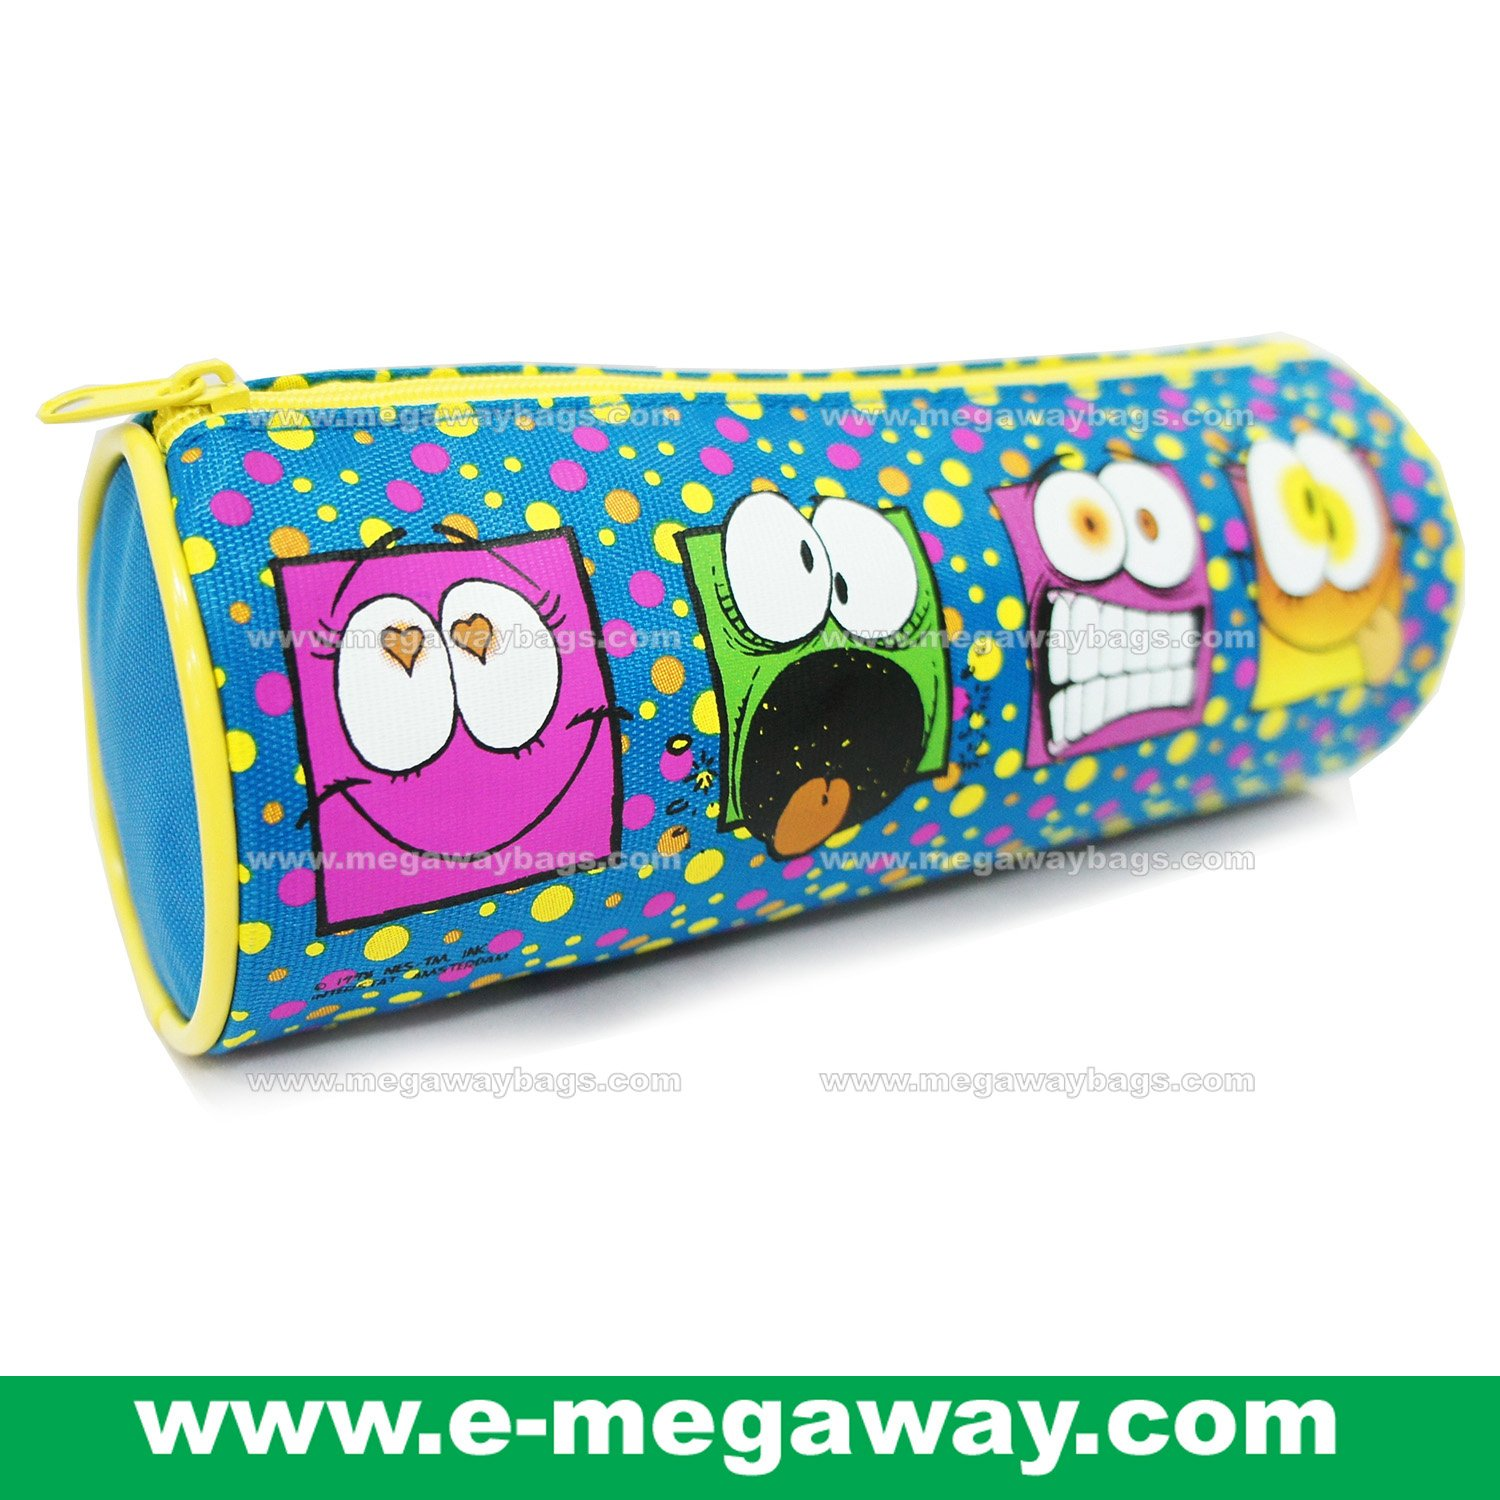 Characters Licence Pencil Case Pouch School Pen Kids Children Bags Stationery MegawayBags #CC- 0804